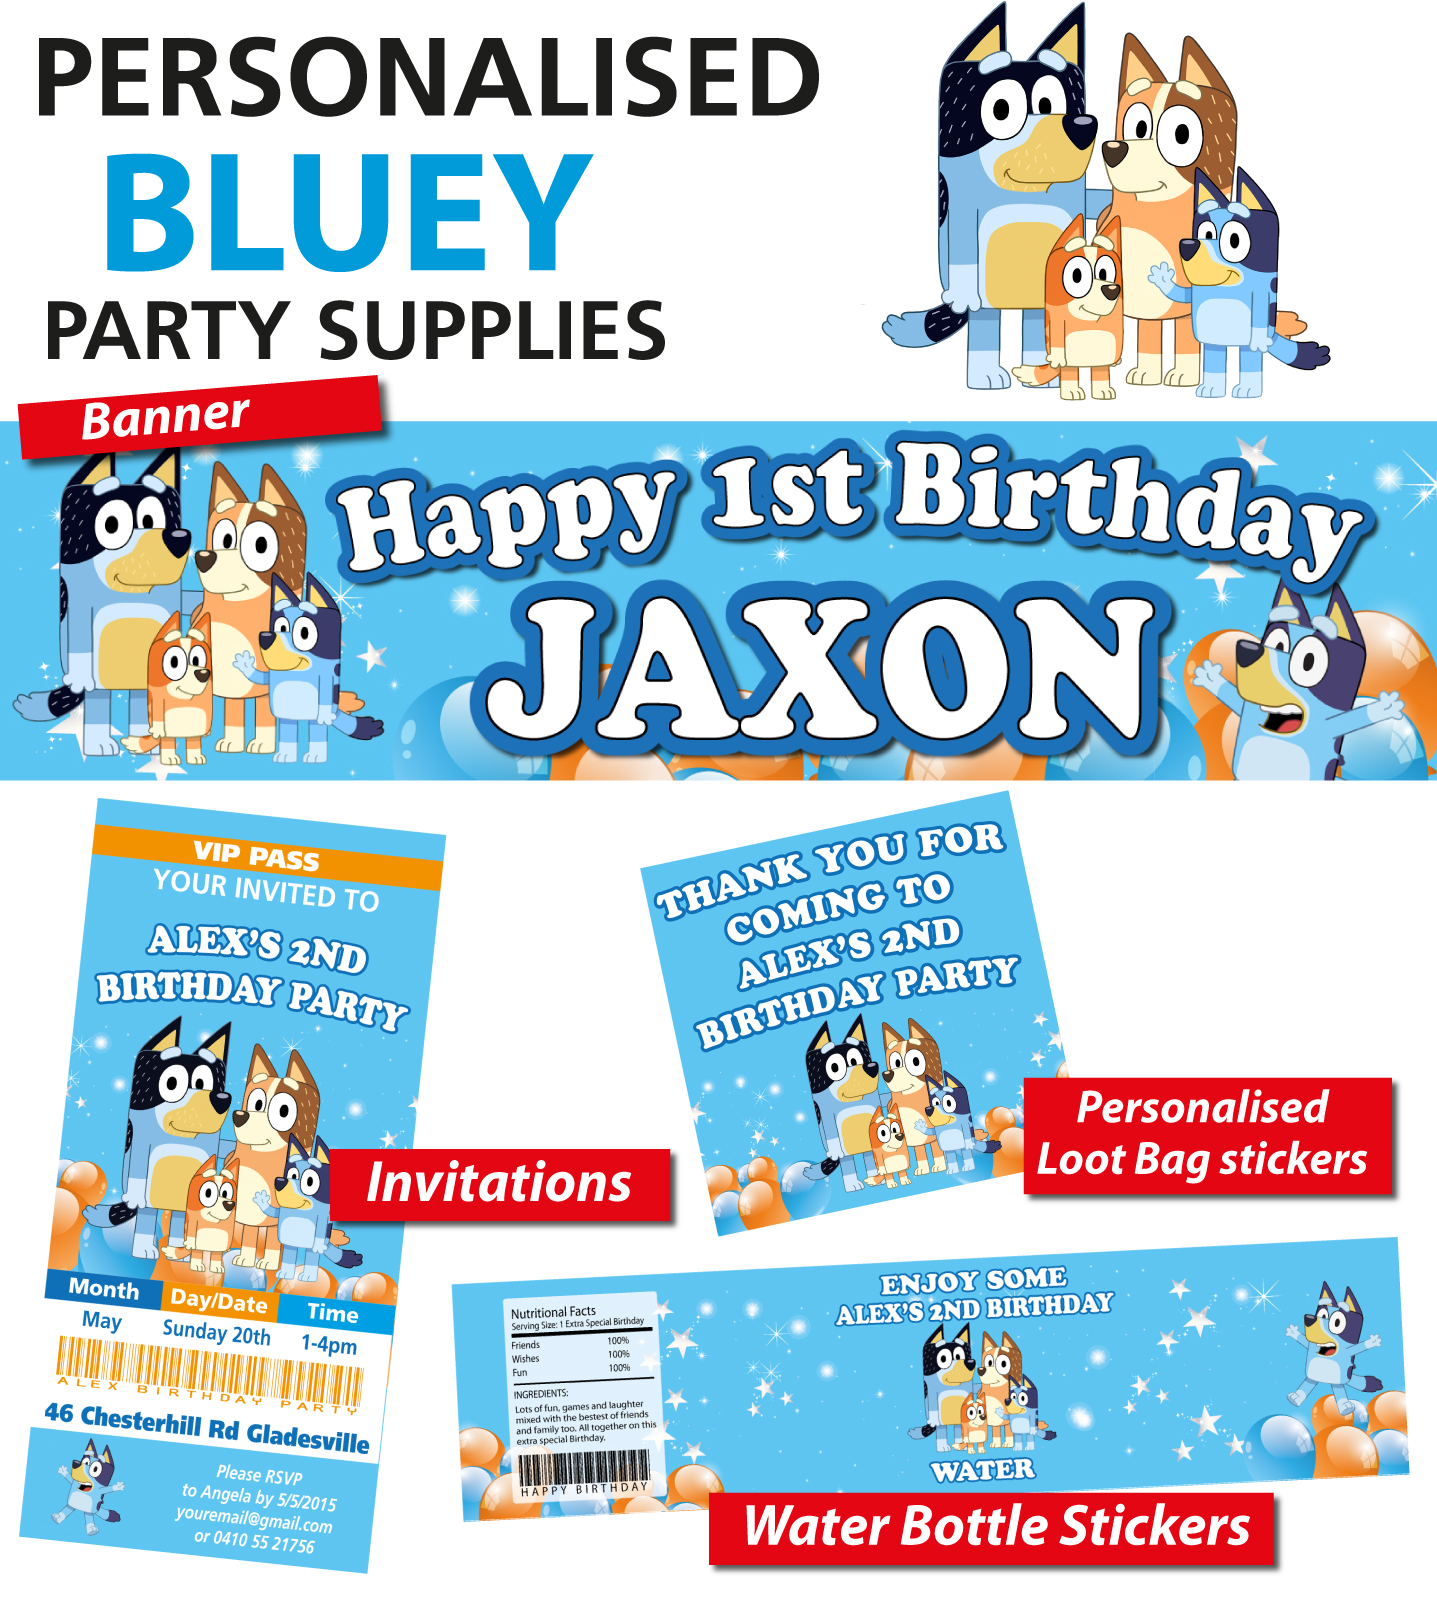 bluey-birthday-party-ebay.jpg